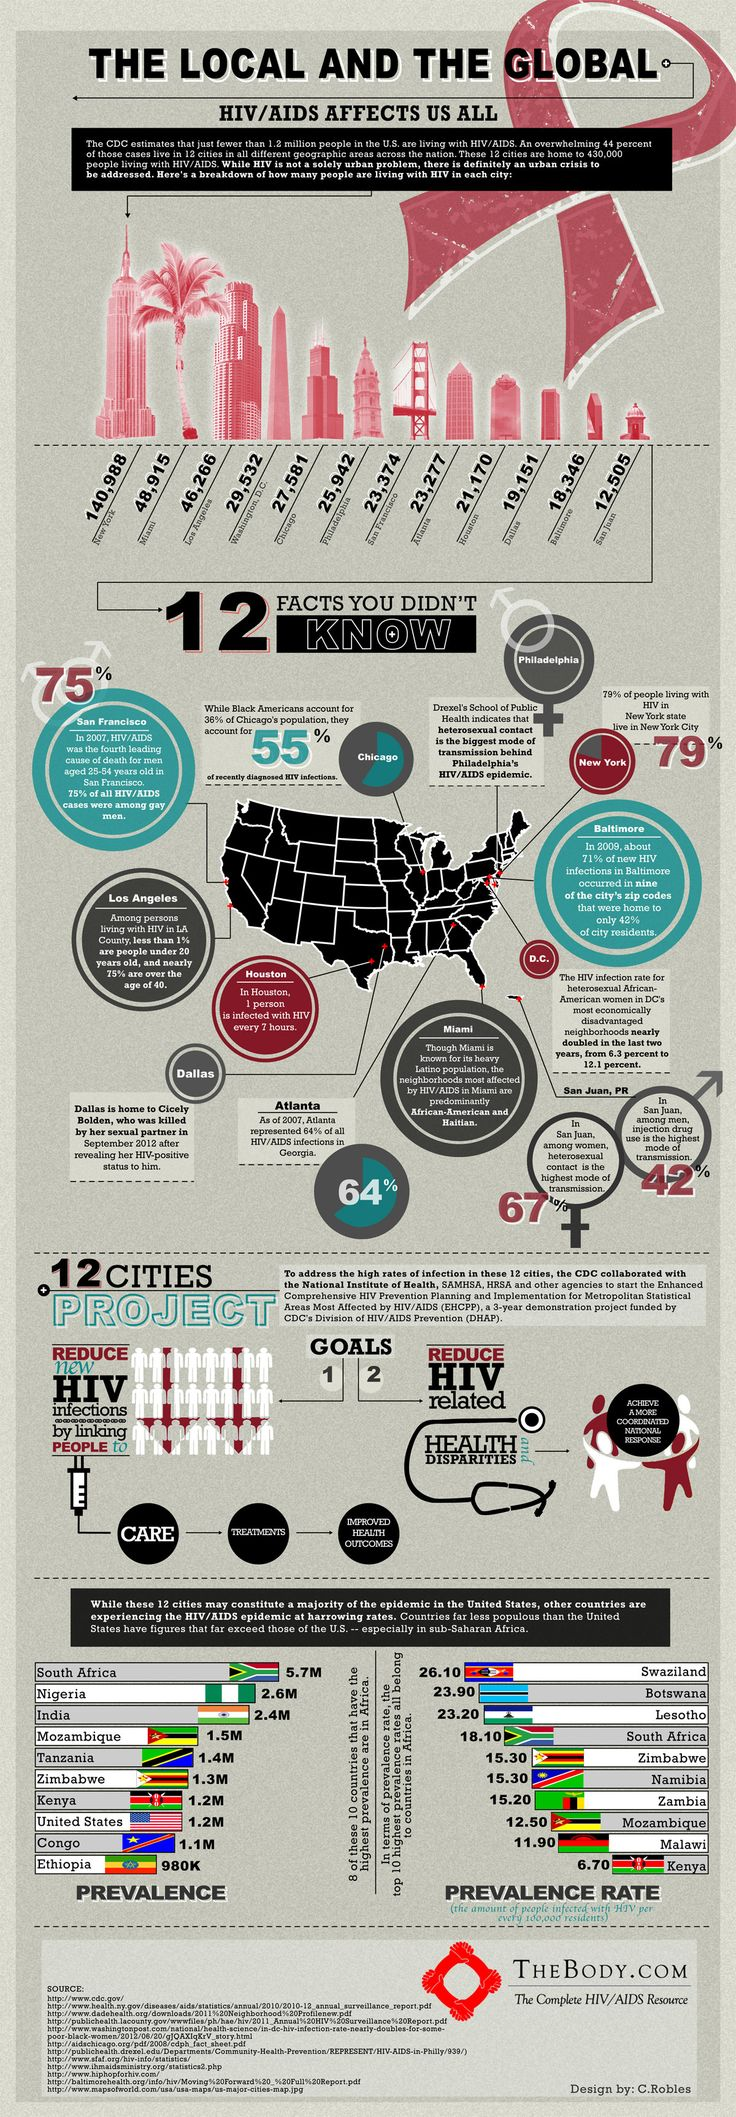 World AIDS Day [Infographic]  December 1 marks World AIDS Day. Although it affects a relatively small number of people in the US (about 1.2 million), tens of millions more are infected globally, especially in sub-Saharan Africa.